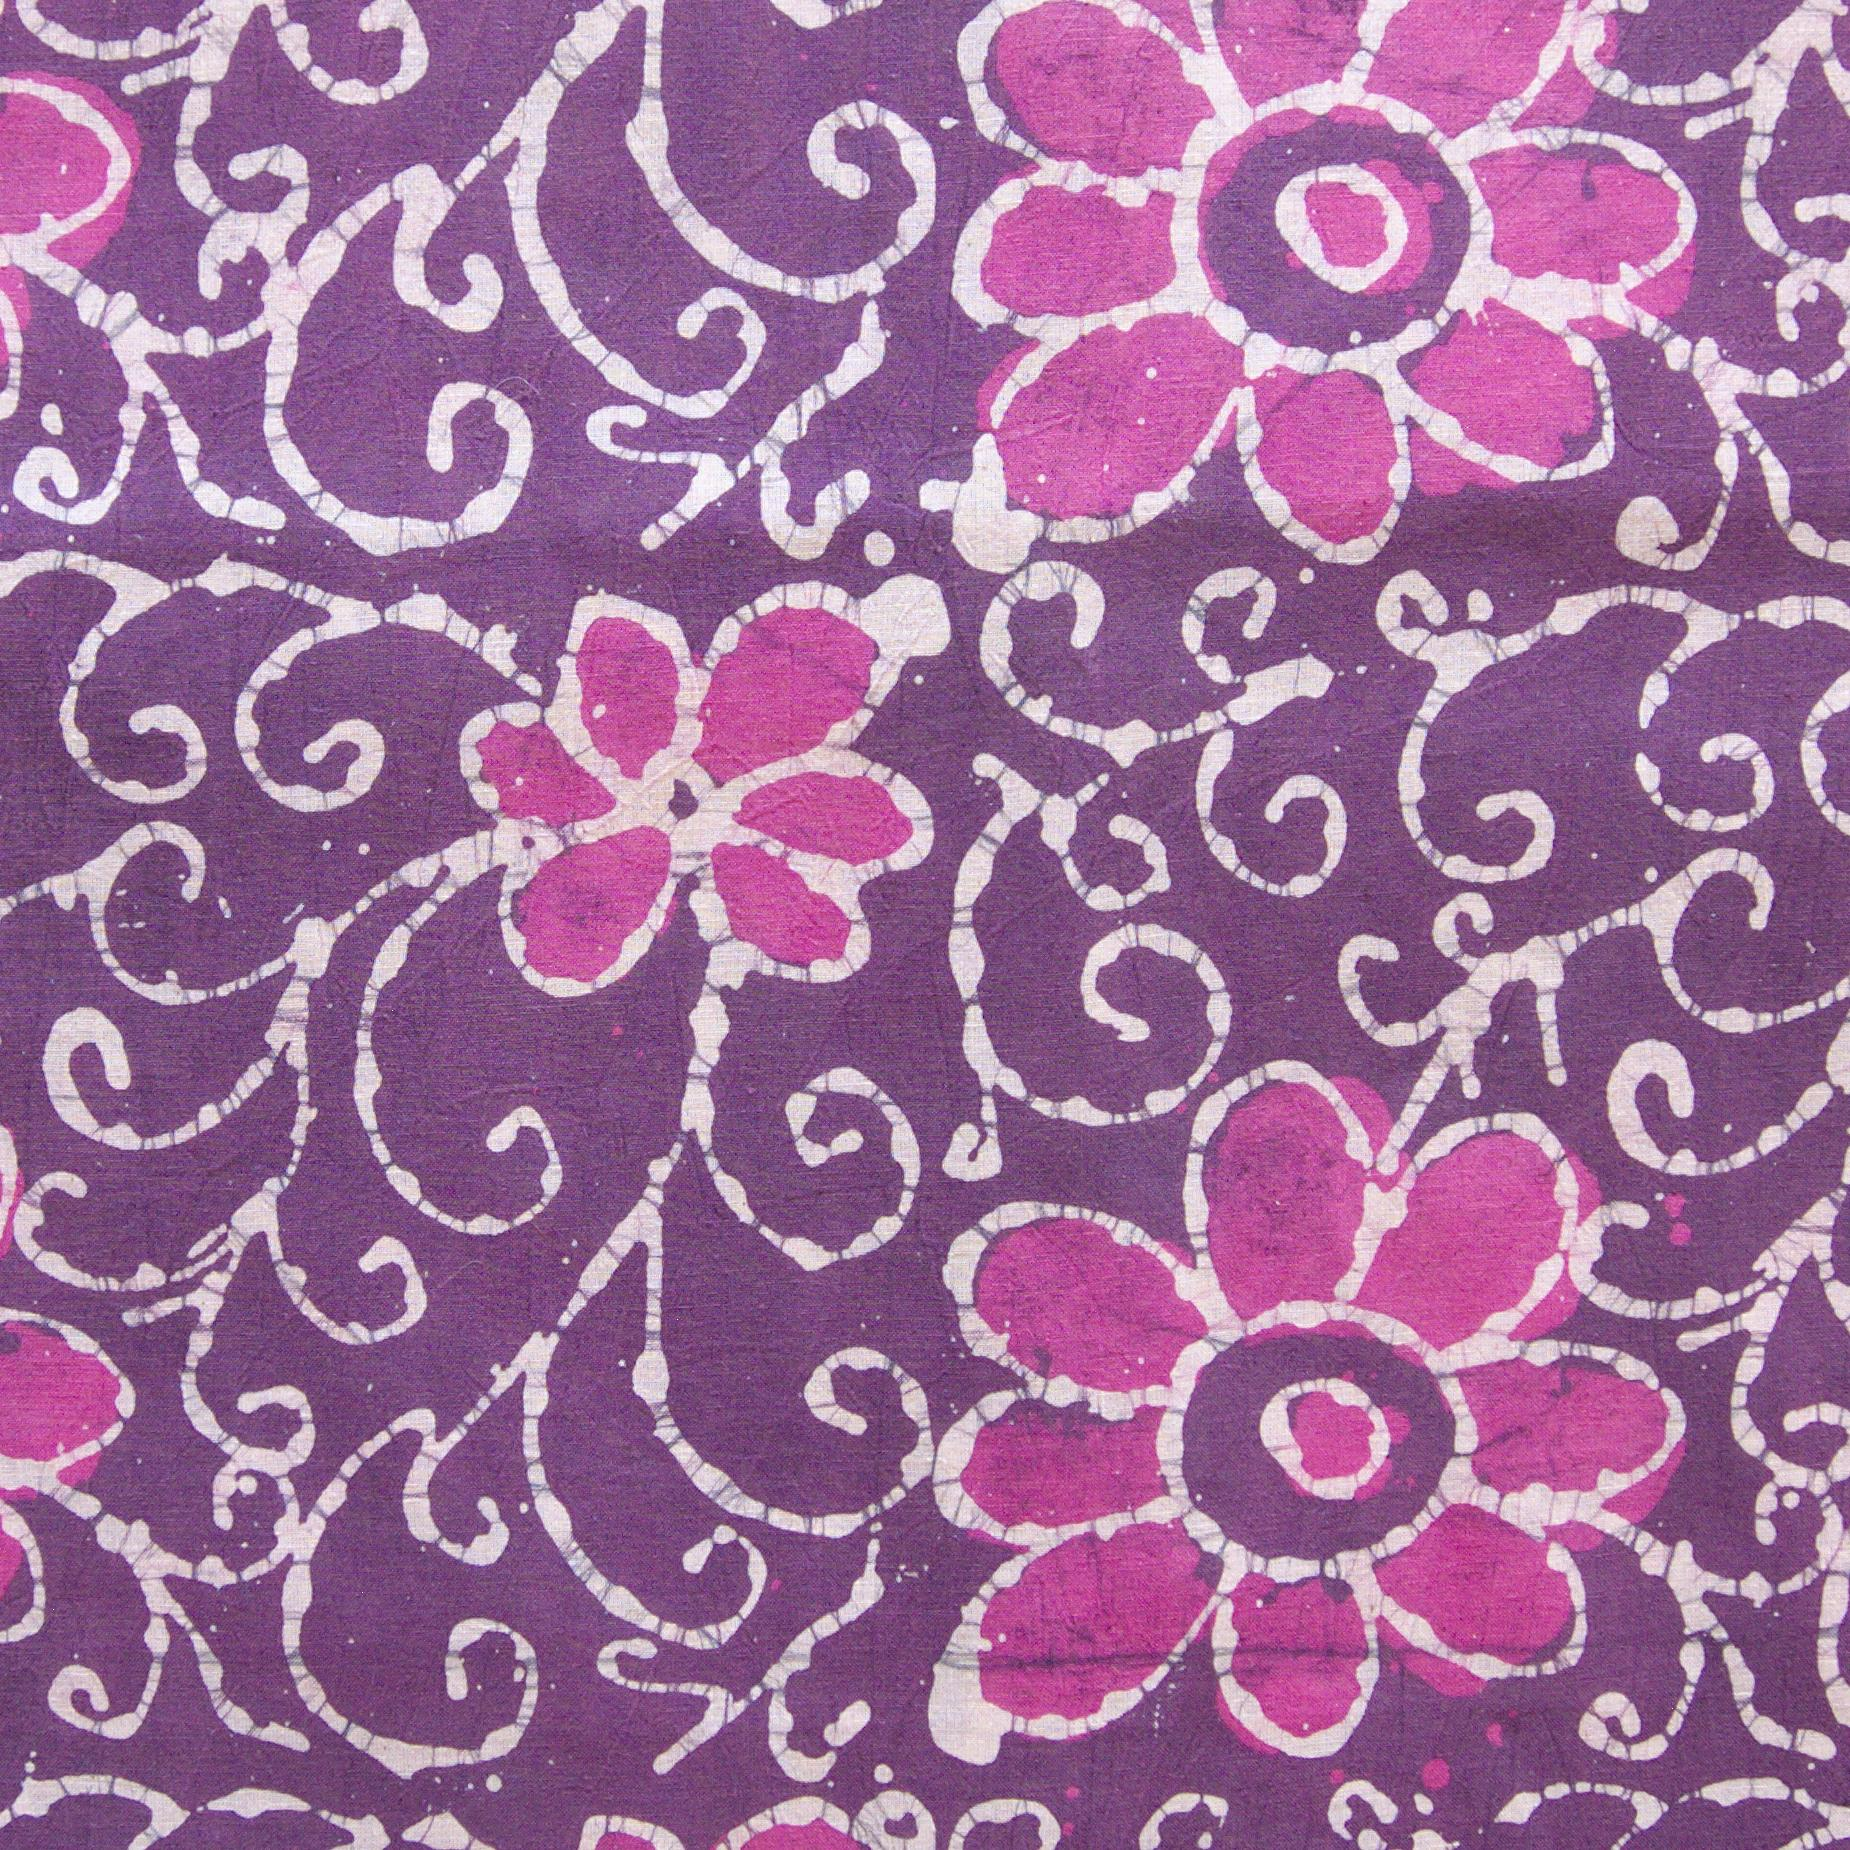 3 - SHA21 - 100% Block-Printed Batik Cotton Fabric From India - Flower Power Motif - Flat - Live